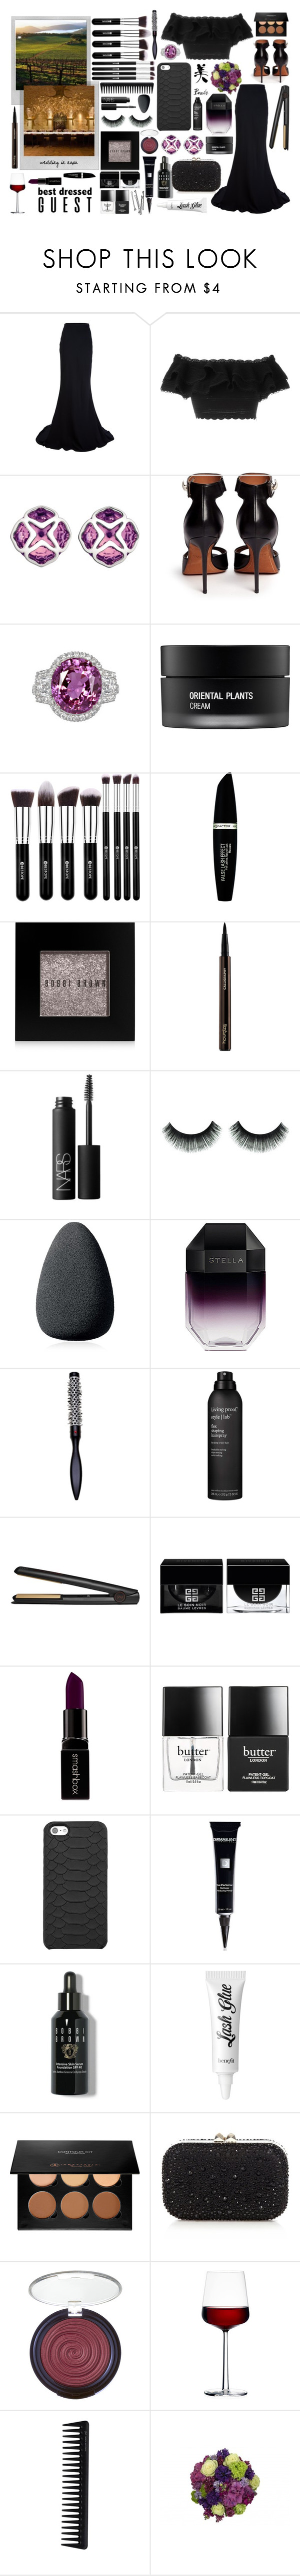 """""""Best Dressed Guest: Winery"""" by miica-olavarria ❤ liked on Polyvore featuring Alexander McQueen, Chopard, Givenchy, Koh Gen Do, Max Factor, Bobbi Brown Cosmetics, Hourglass Cosmetics, NARS Cosmetics, Christian Dior and STELLA McCARTNEY"""